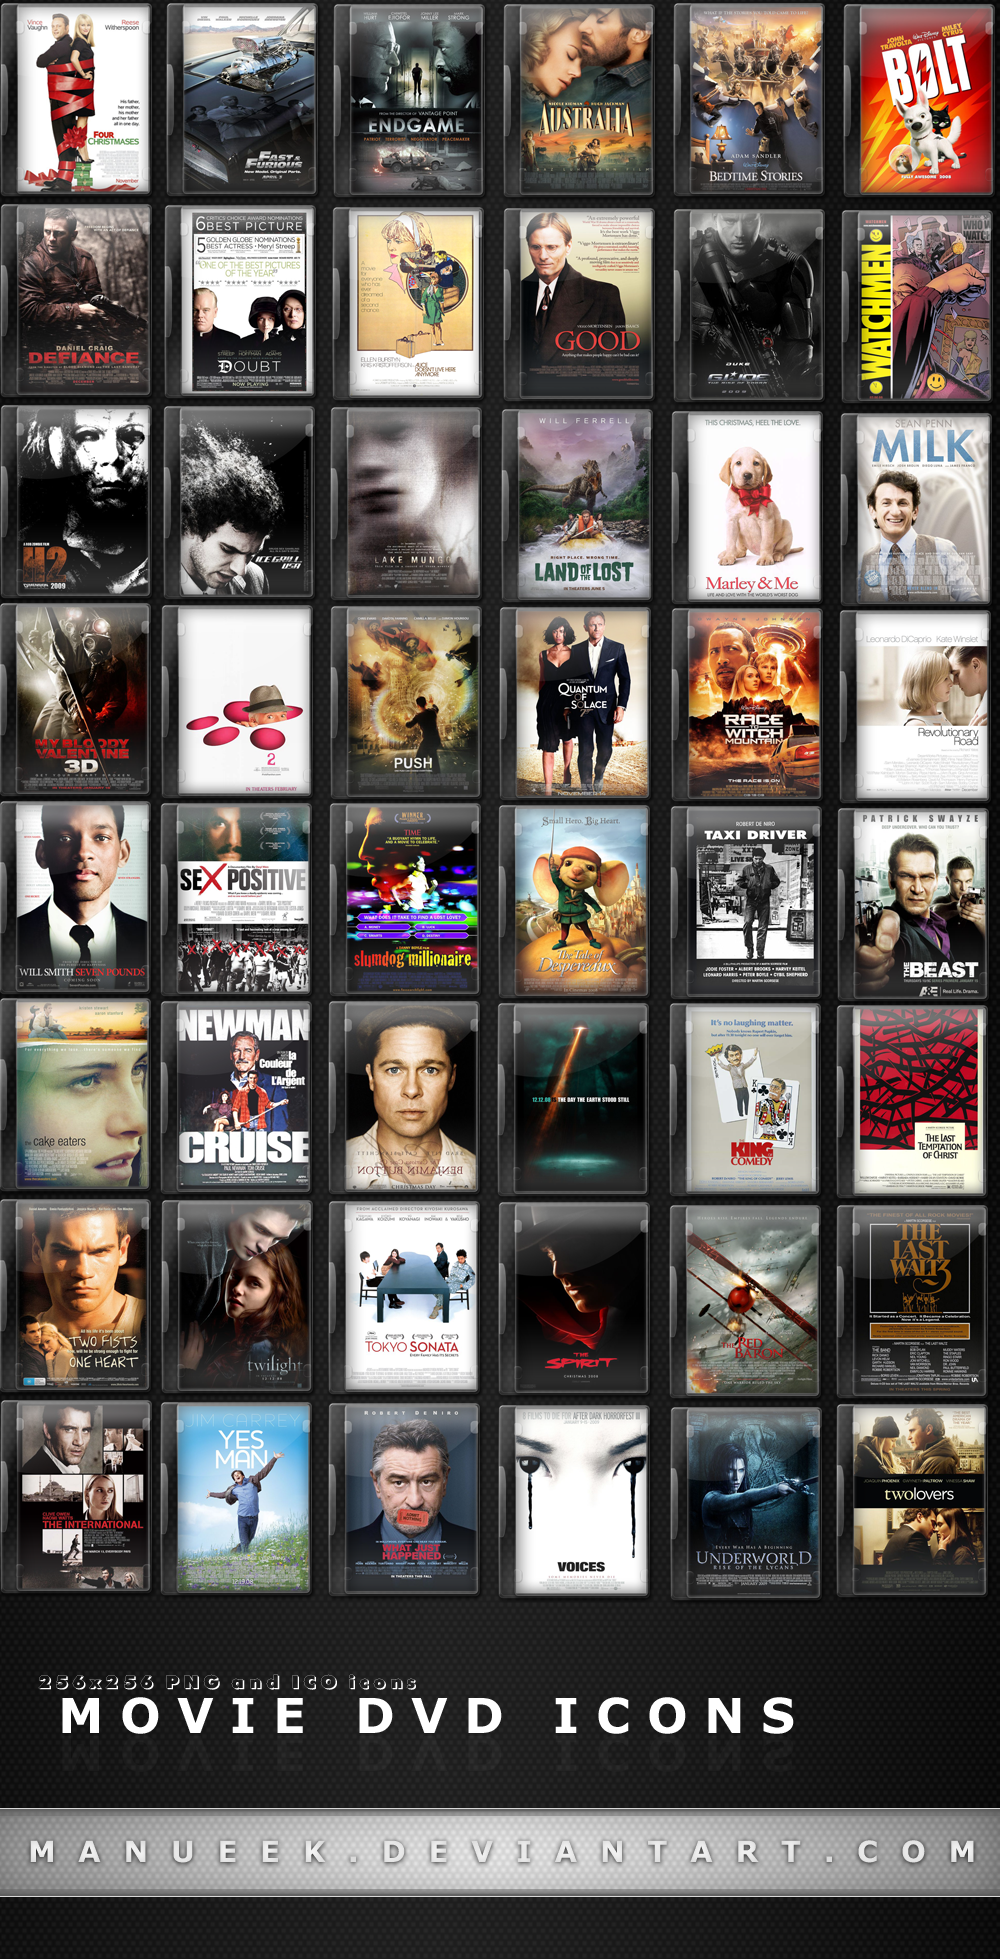 Movie DVD Icons 1 by manueek on DeviantArt